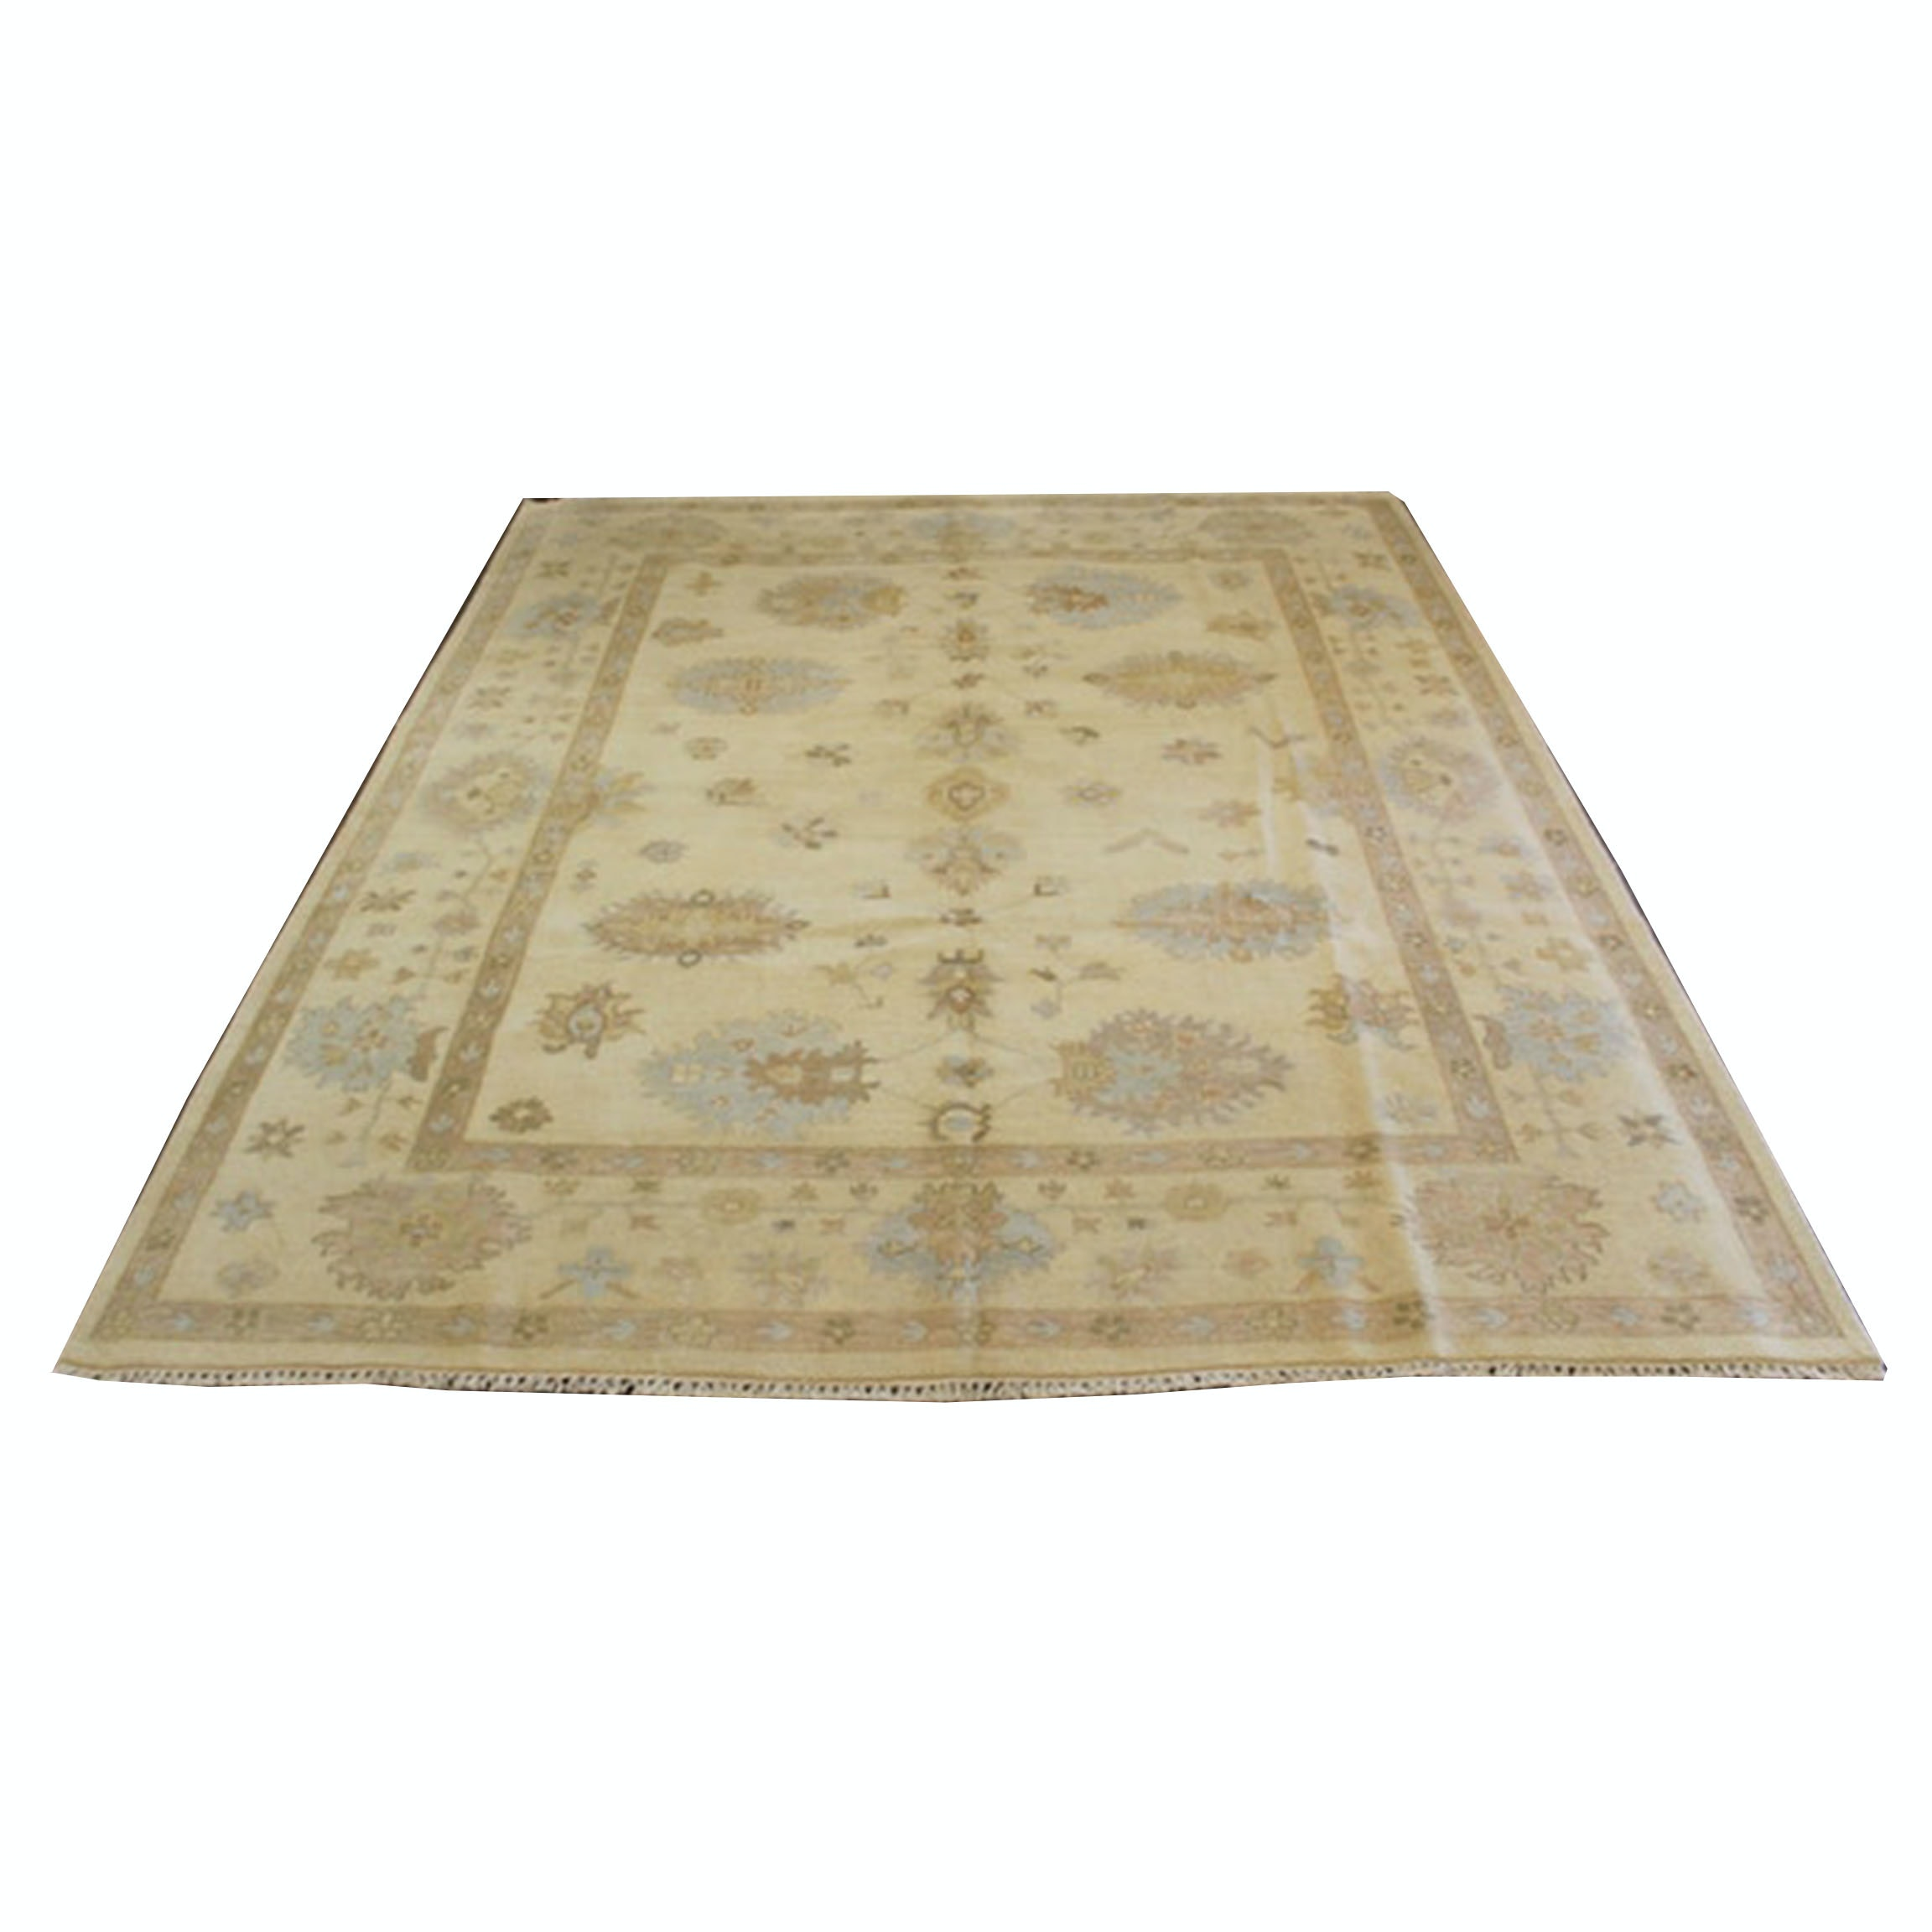 9' x 12' Hand-Knotted Indo-Turkish Oushak Room Sized Rug